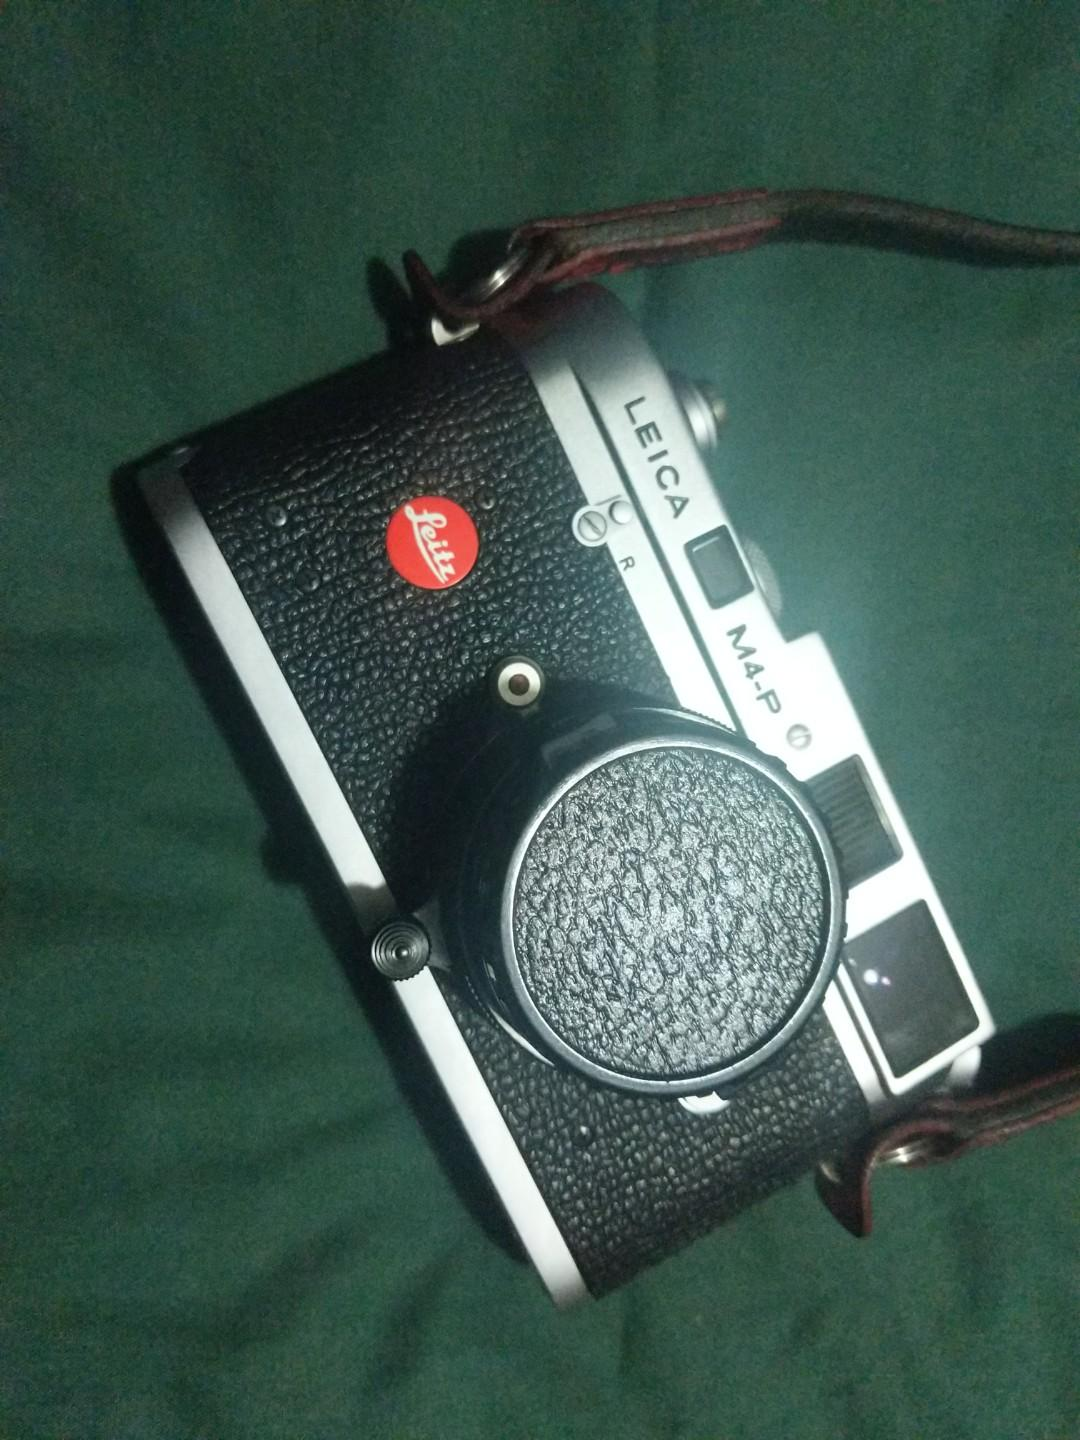 Leica M4P (Viewfinder flushed same as the M6) on Carousell